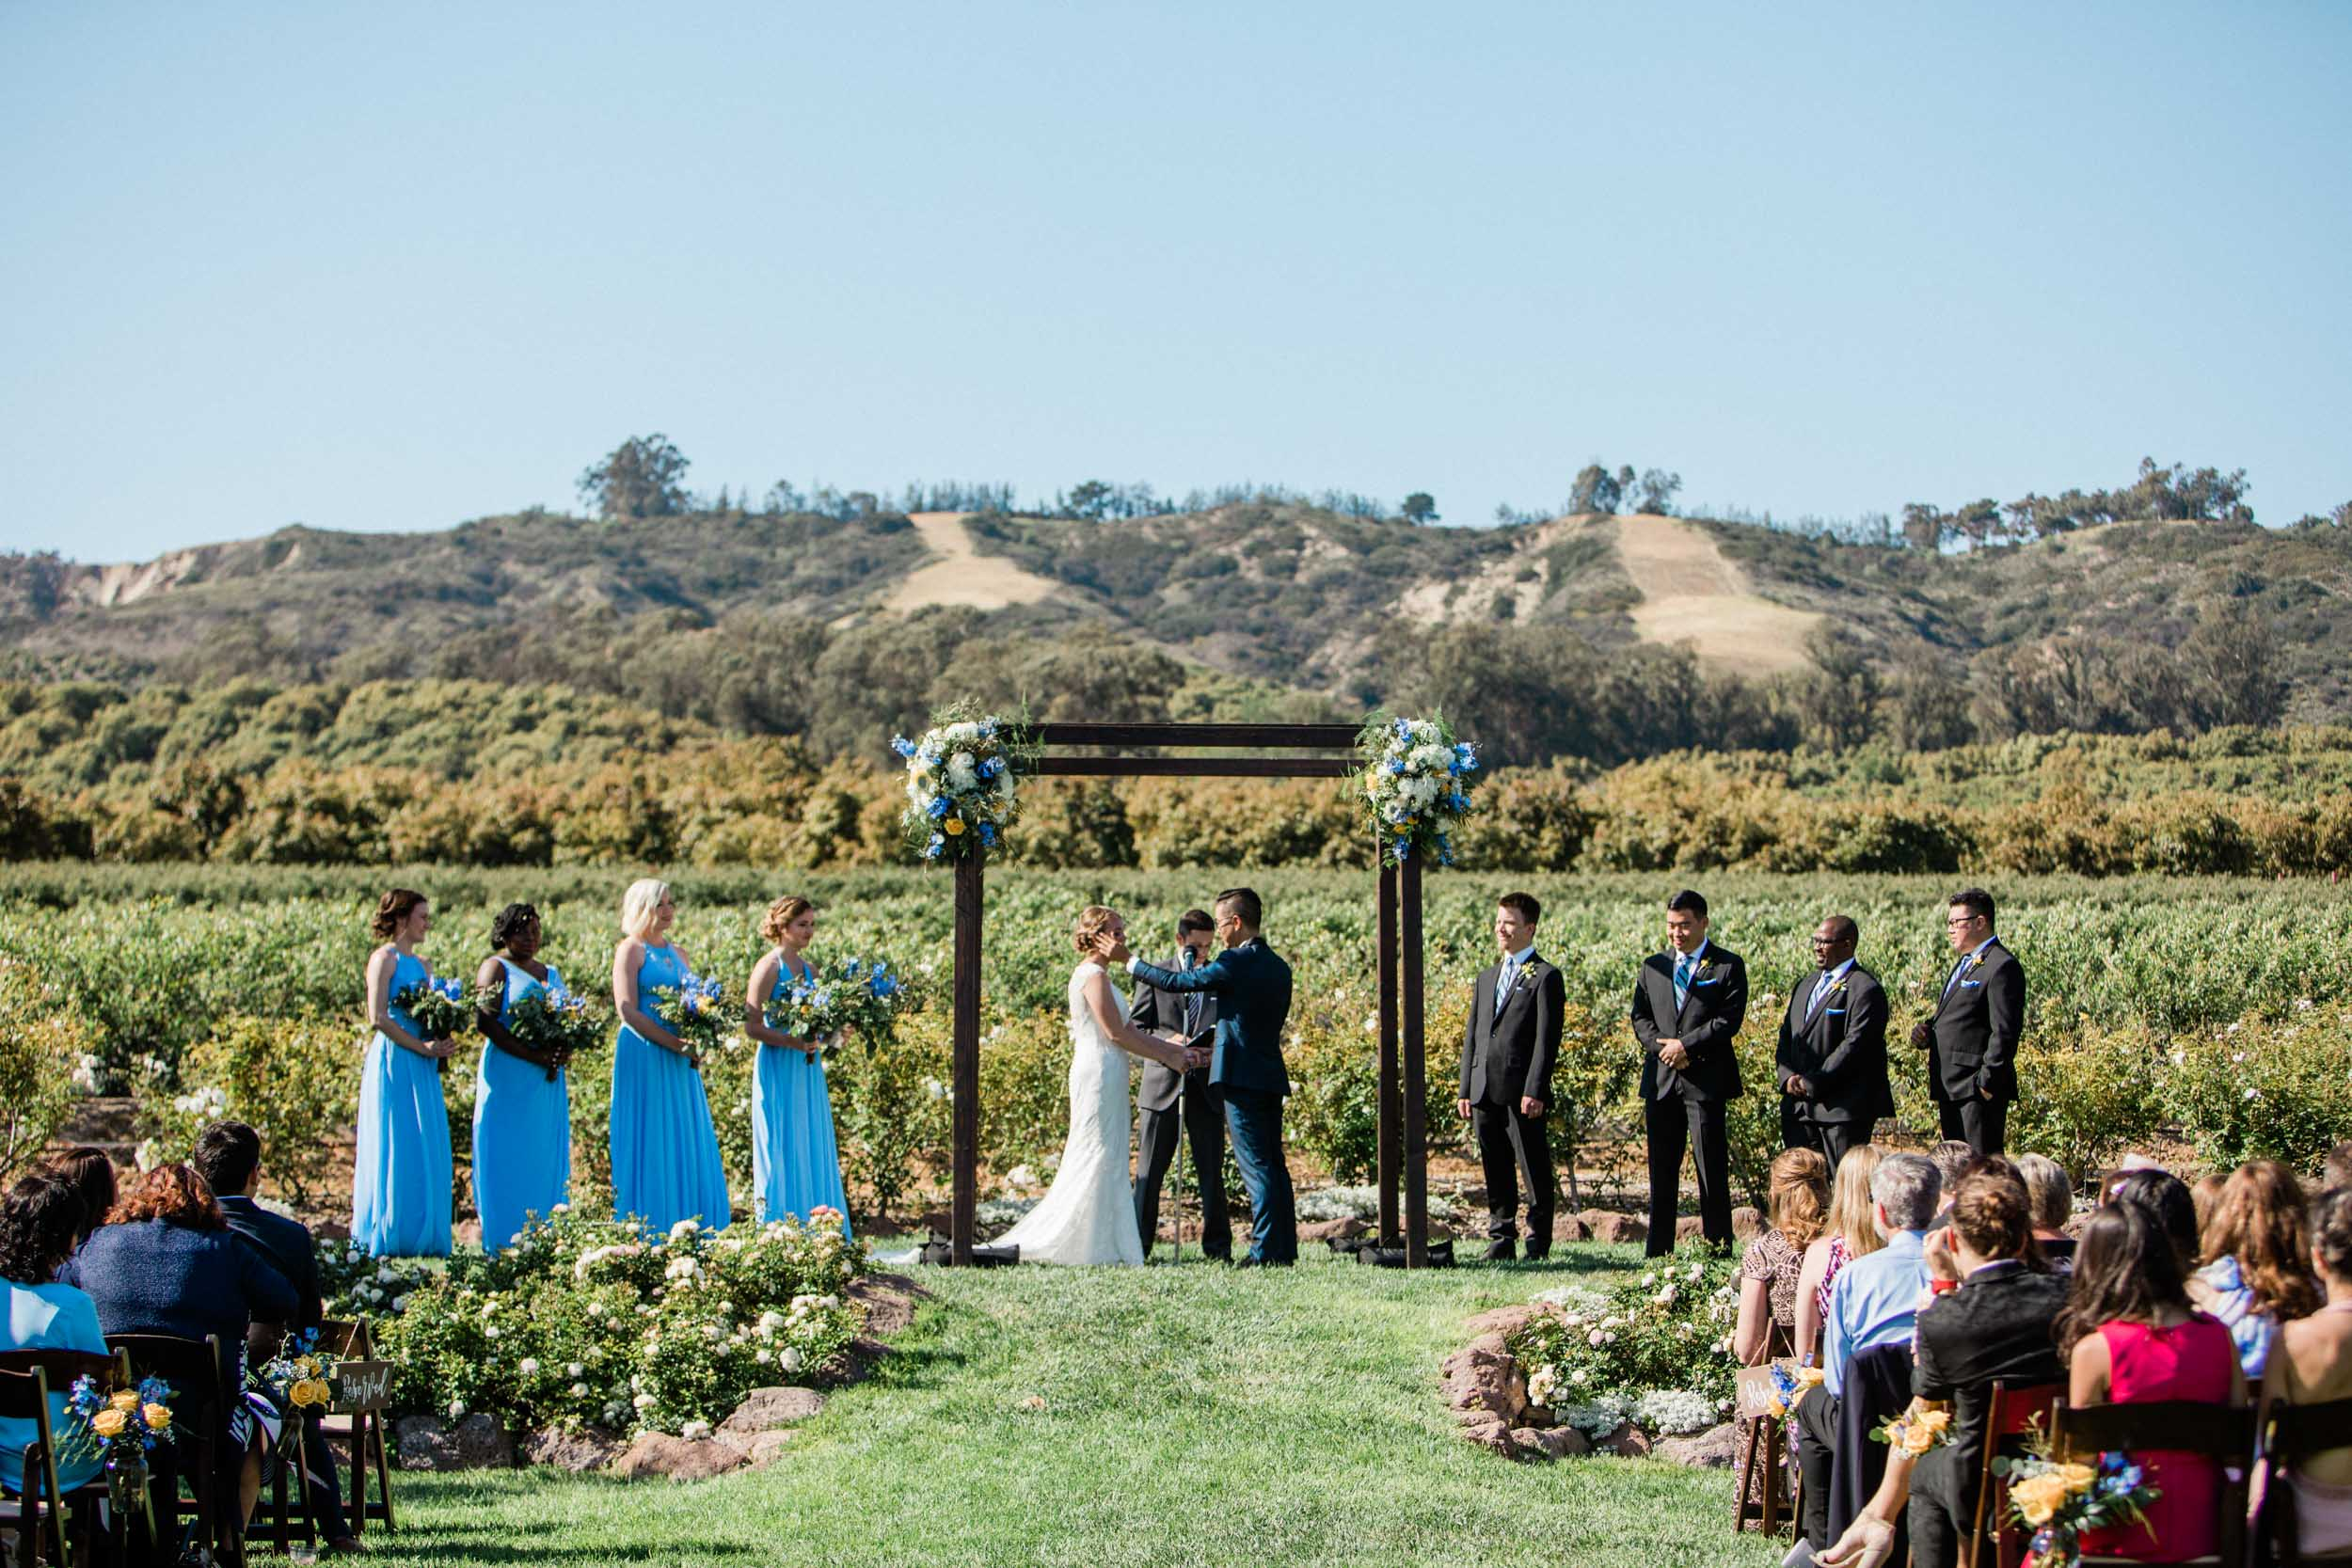 BKM-Photography-Gerry-Ranch-Southern-California-Wedding-0074.jpg